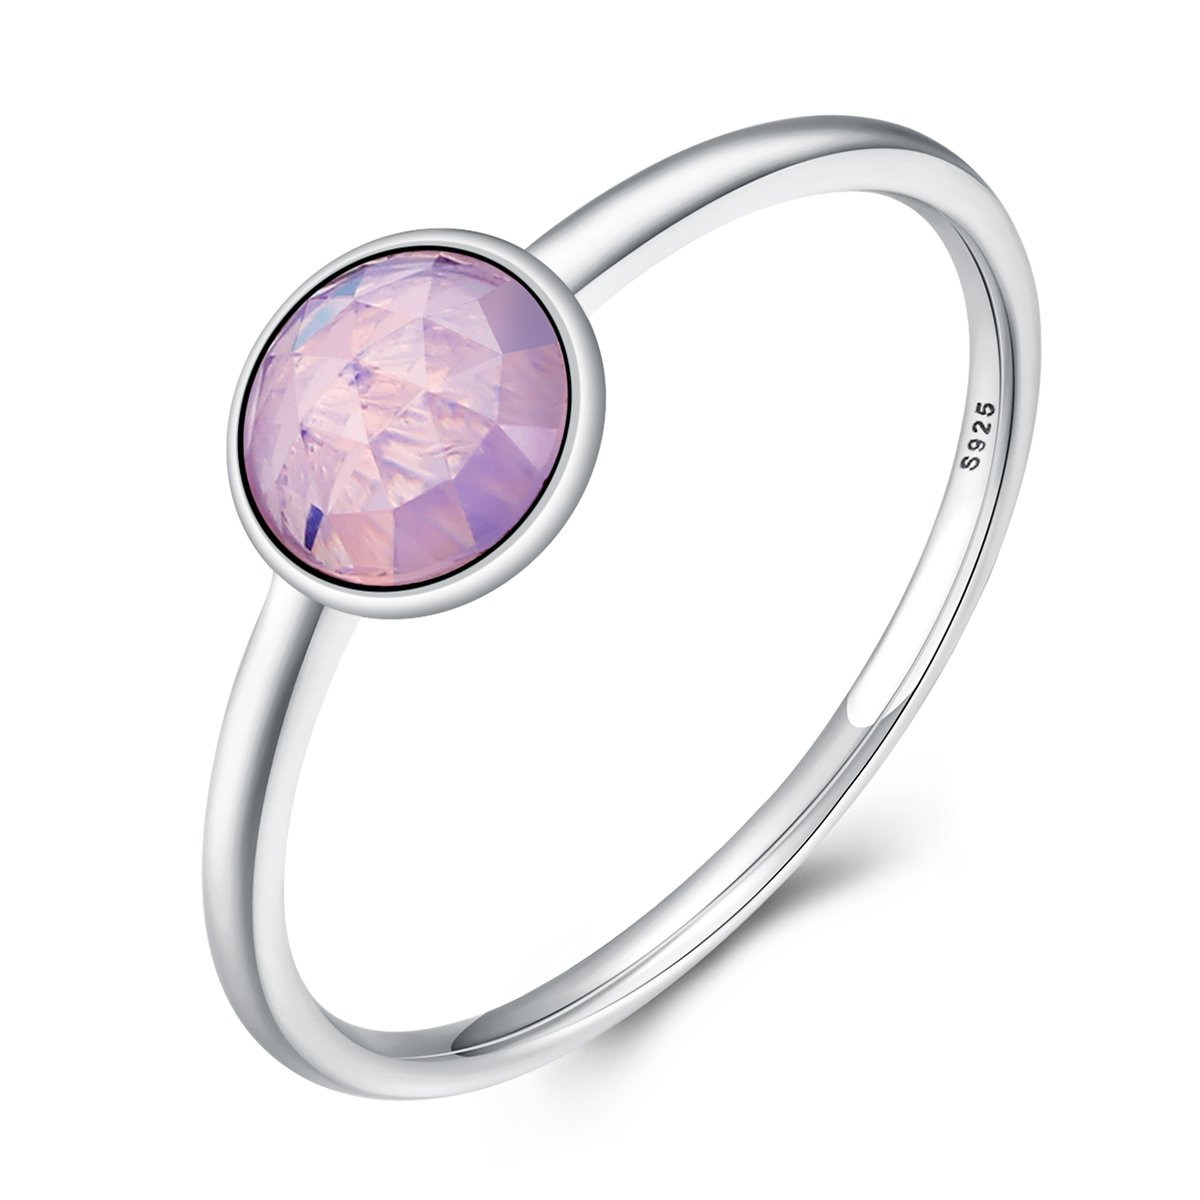 The Kiss October Droplet 925 Sterling Silver Stackable Ring Opalescent Pink CZ